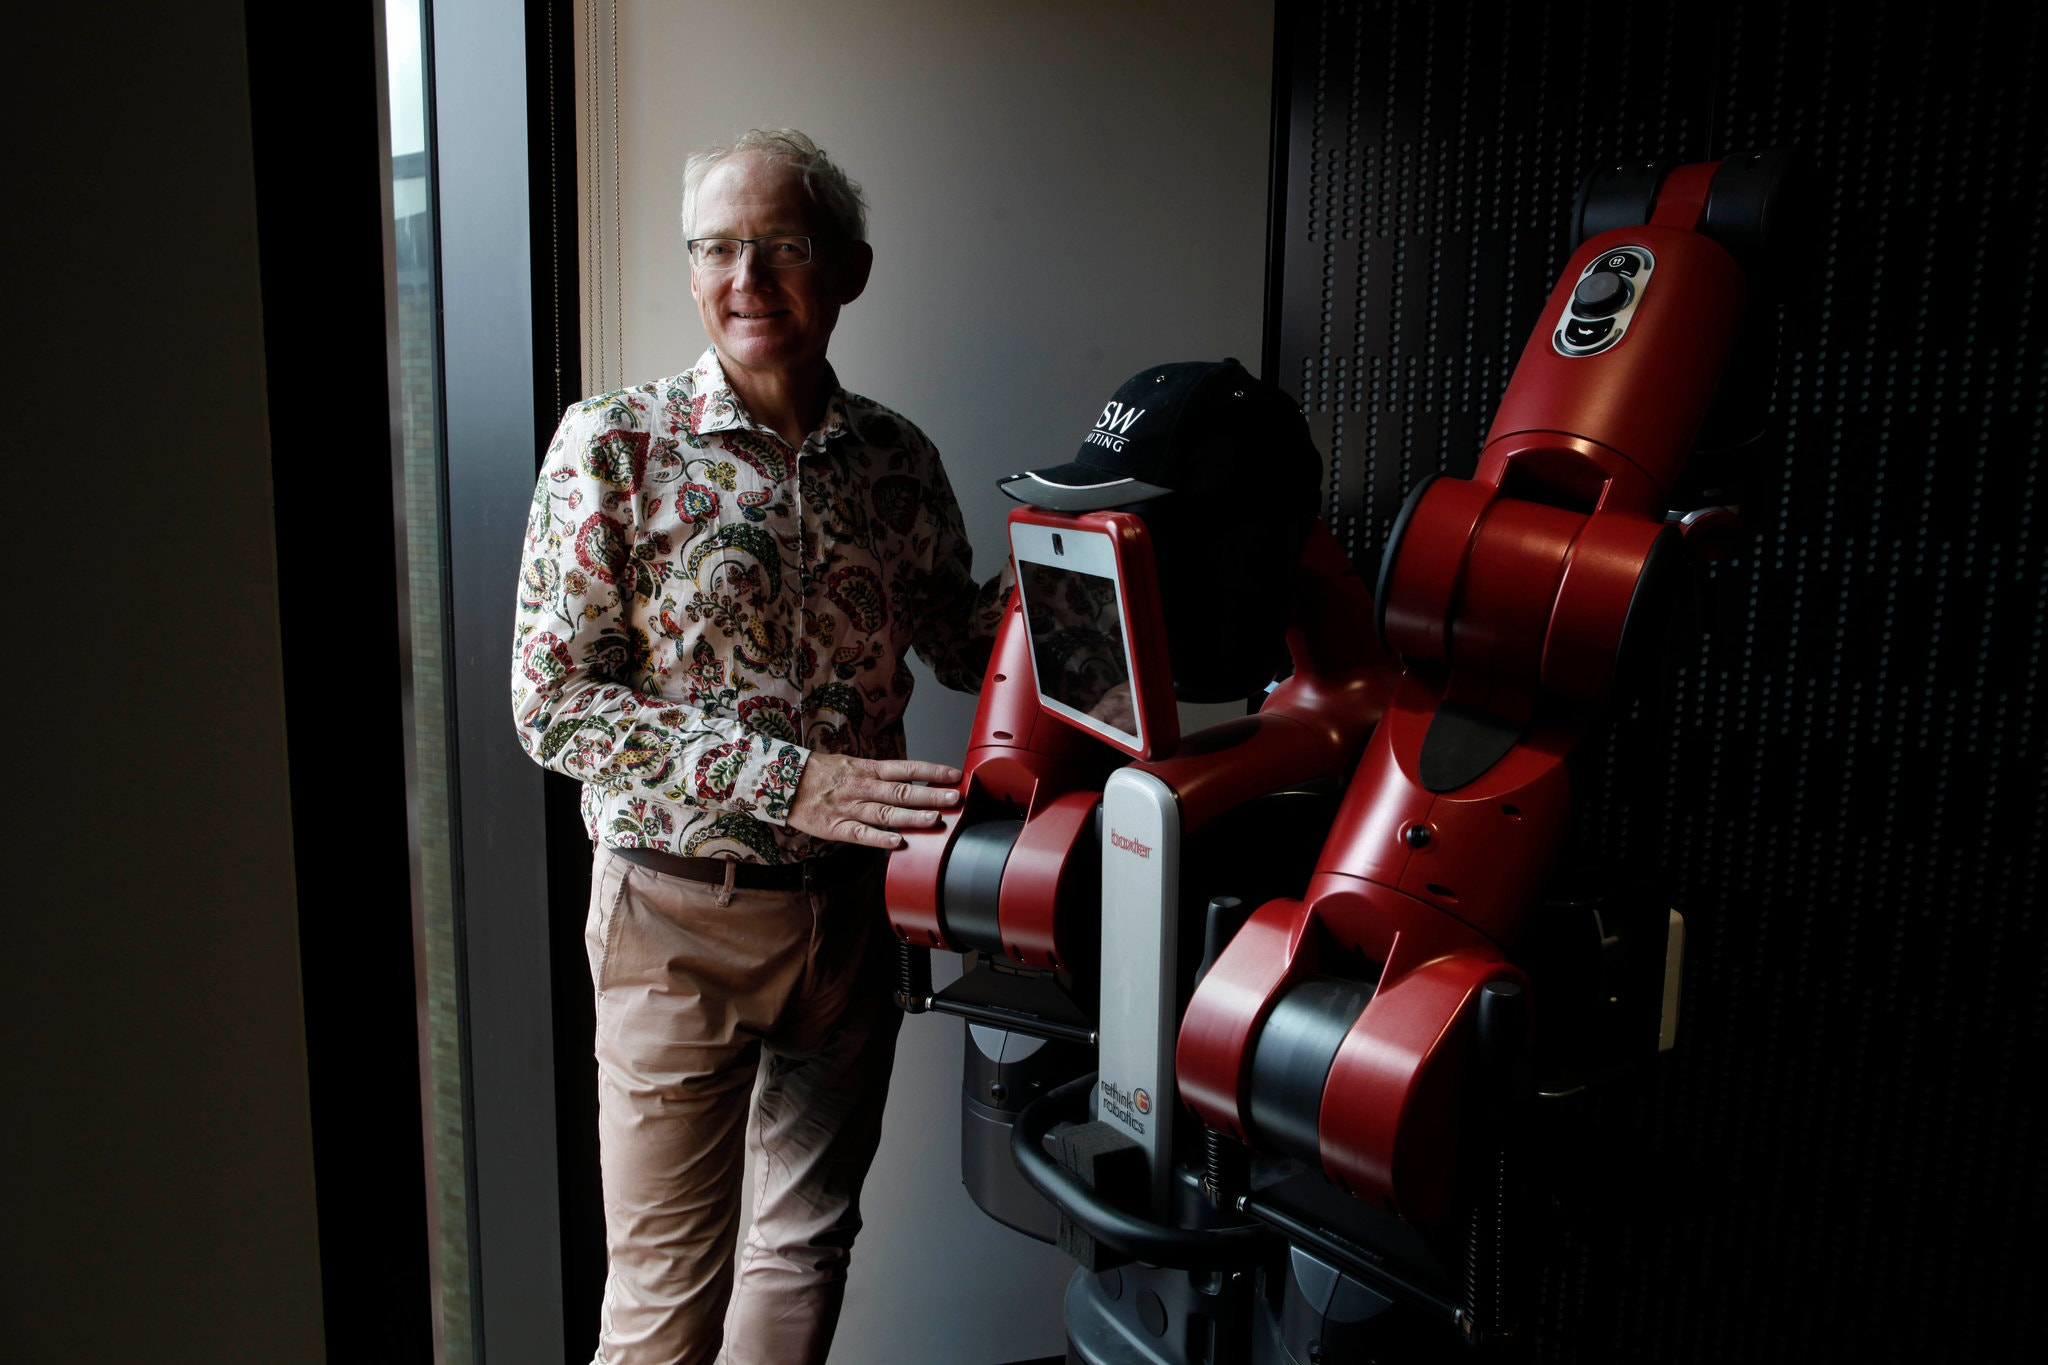 ARTICLE: Toby Walsh, A.I. Expert, Is Racing to Stop the Killer Robots